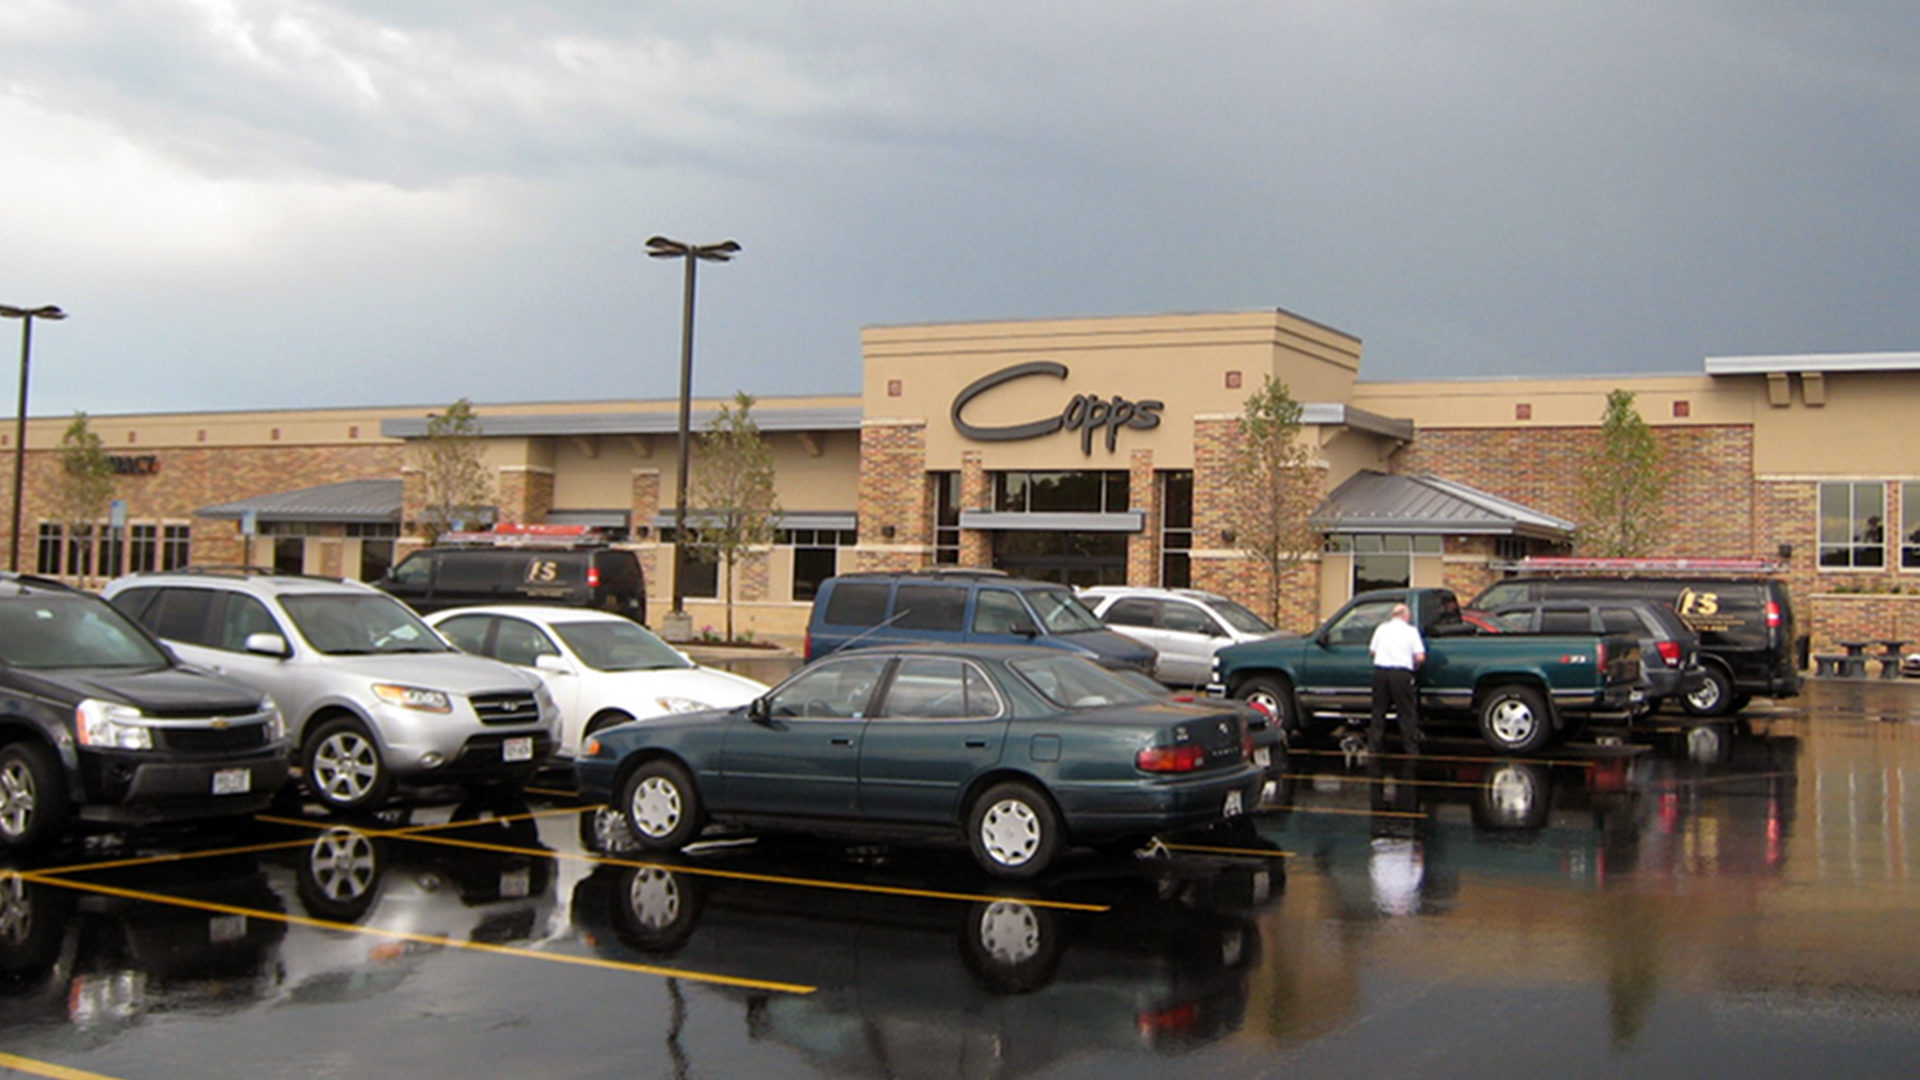 Copps and Pick N Save Sun Prairie WI Exterior View from the Parking Lot